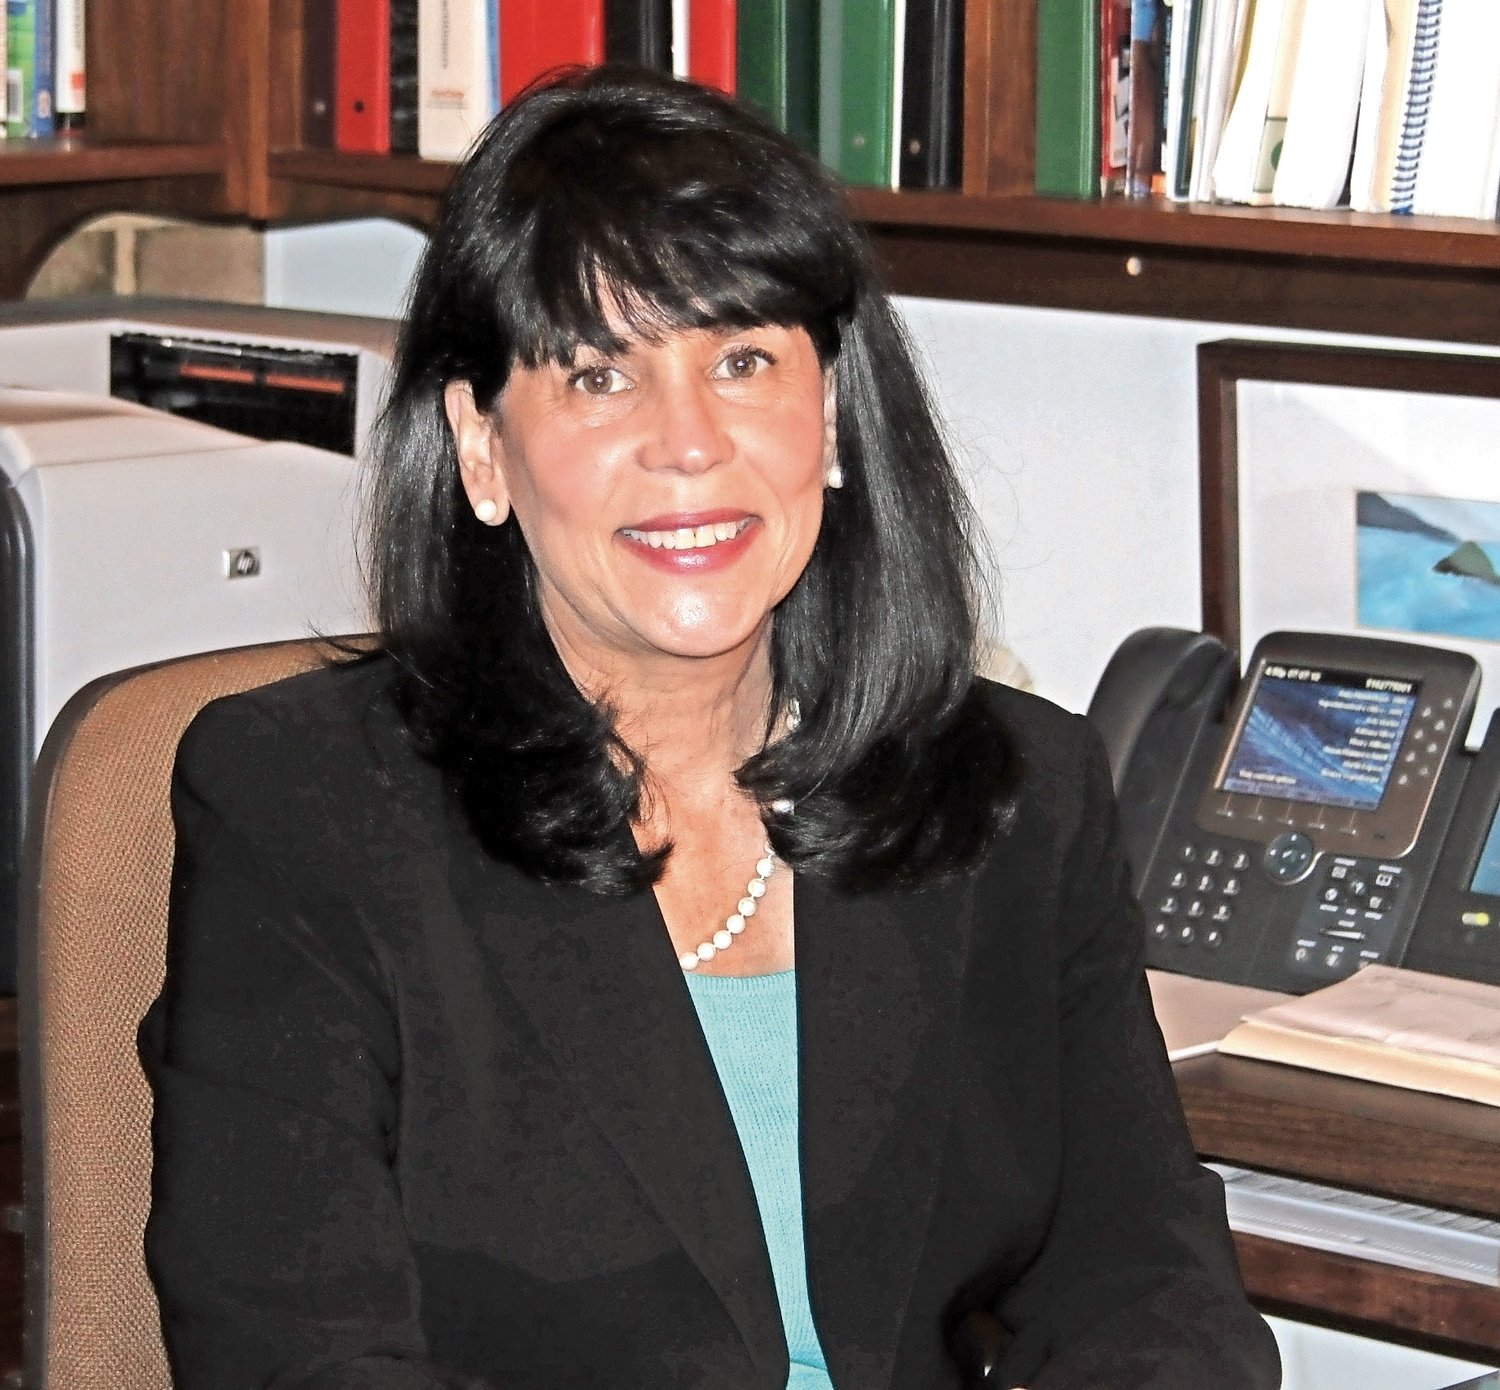 Dr. Anna Hunderfund, who said she would retire at the end of the school year, began working for the Locust Valley School District in 2008.